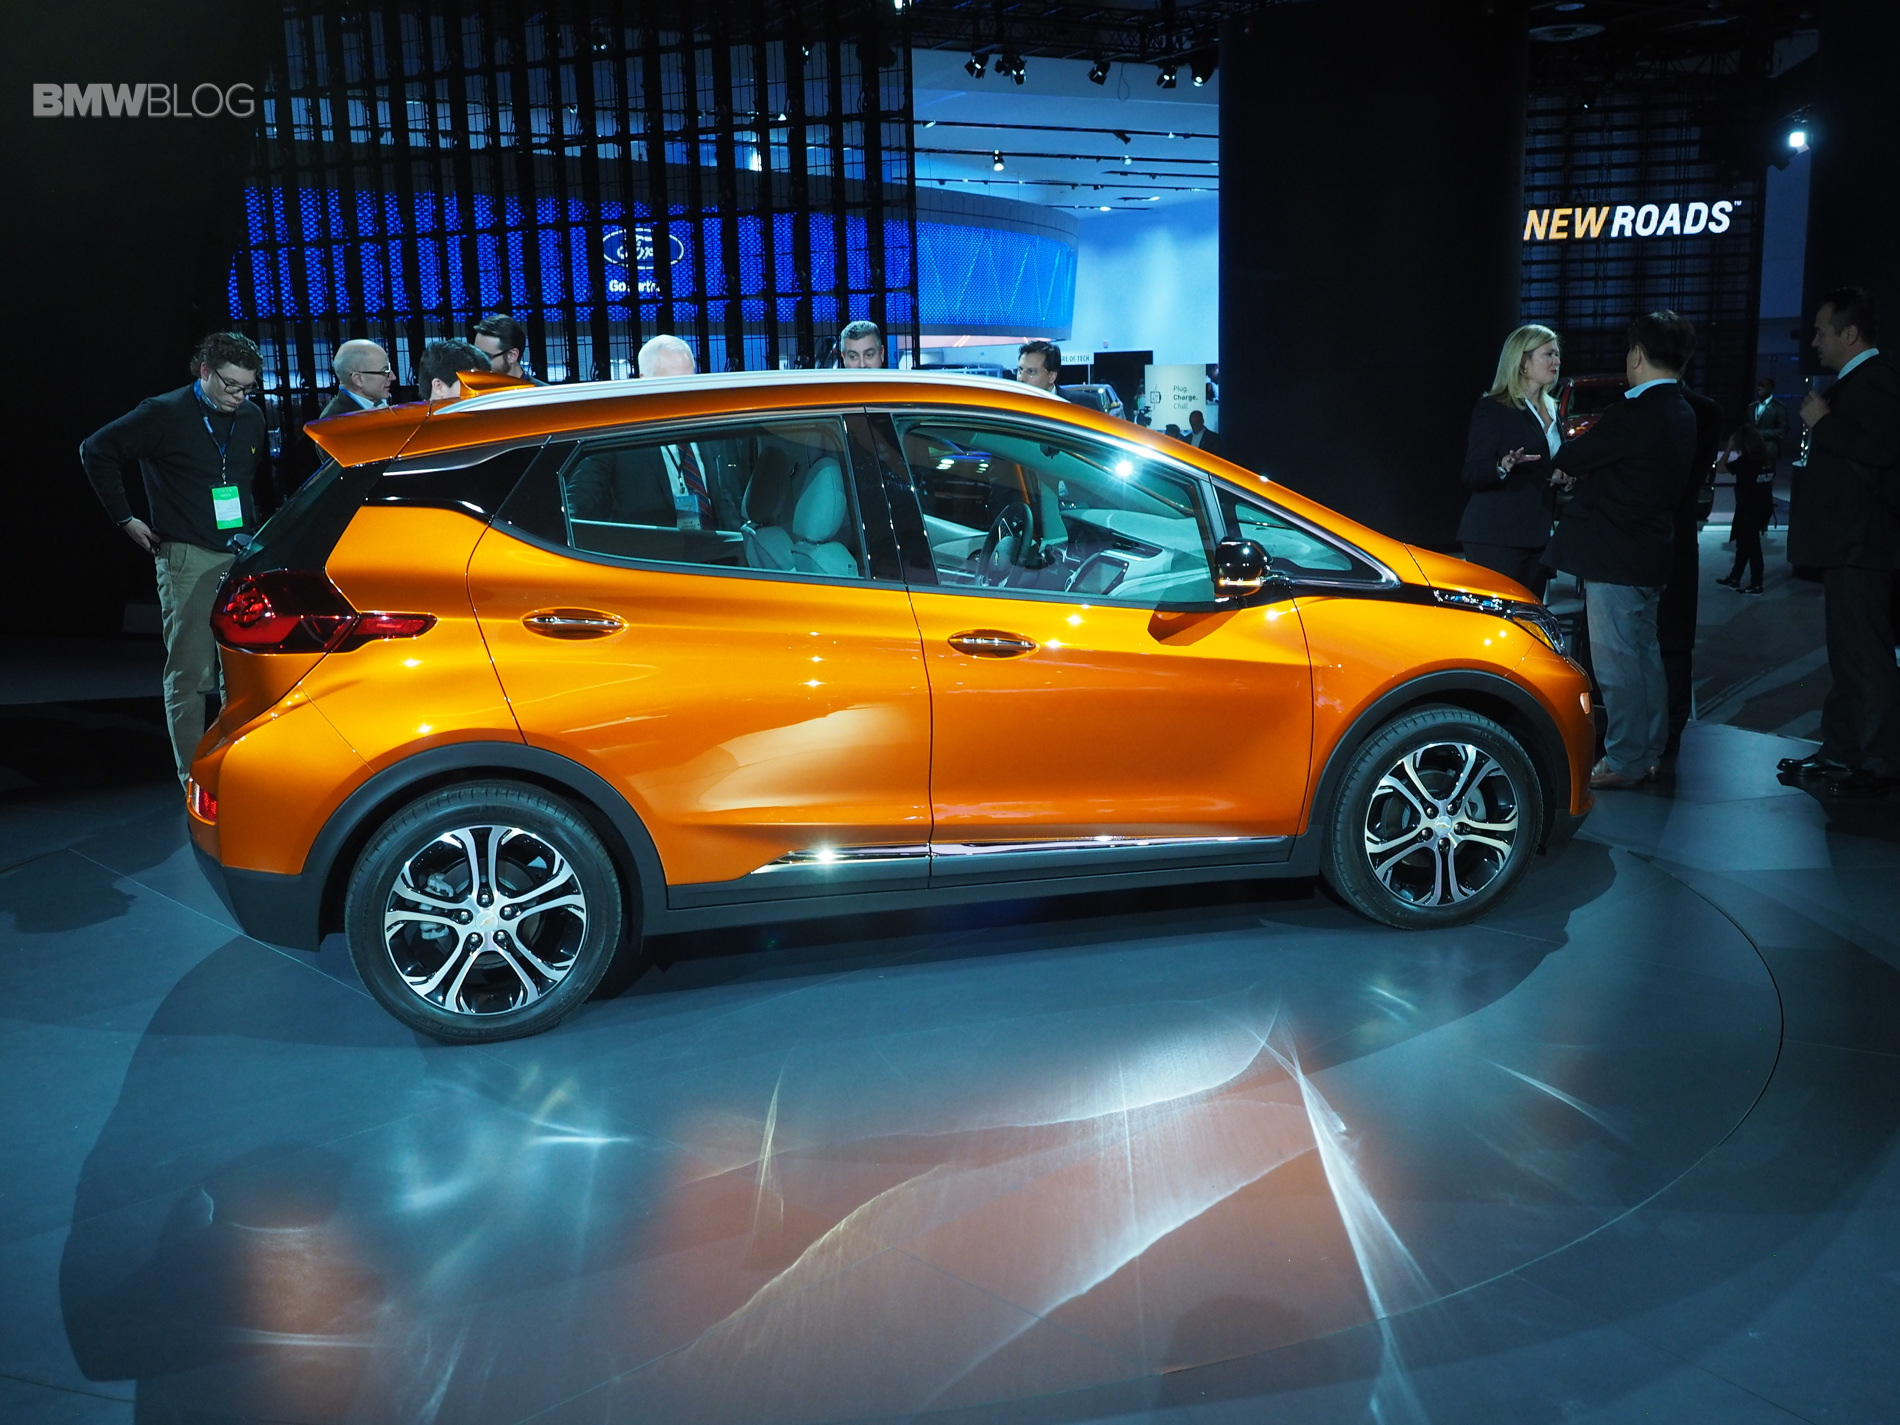 2016 Chevy Bolt Detroit Auto Show 4